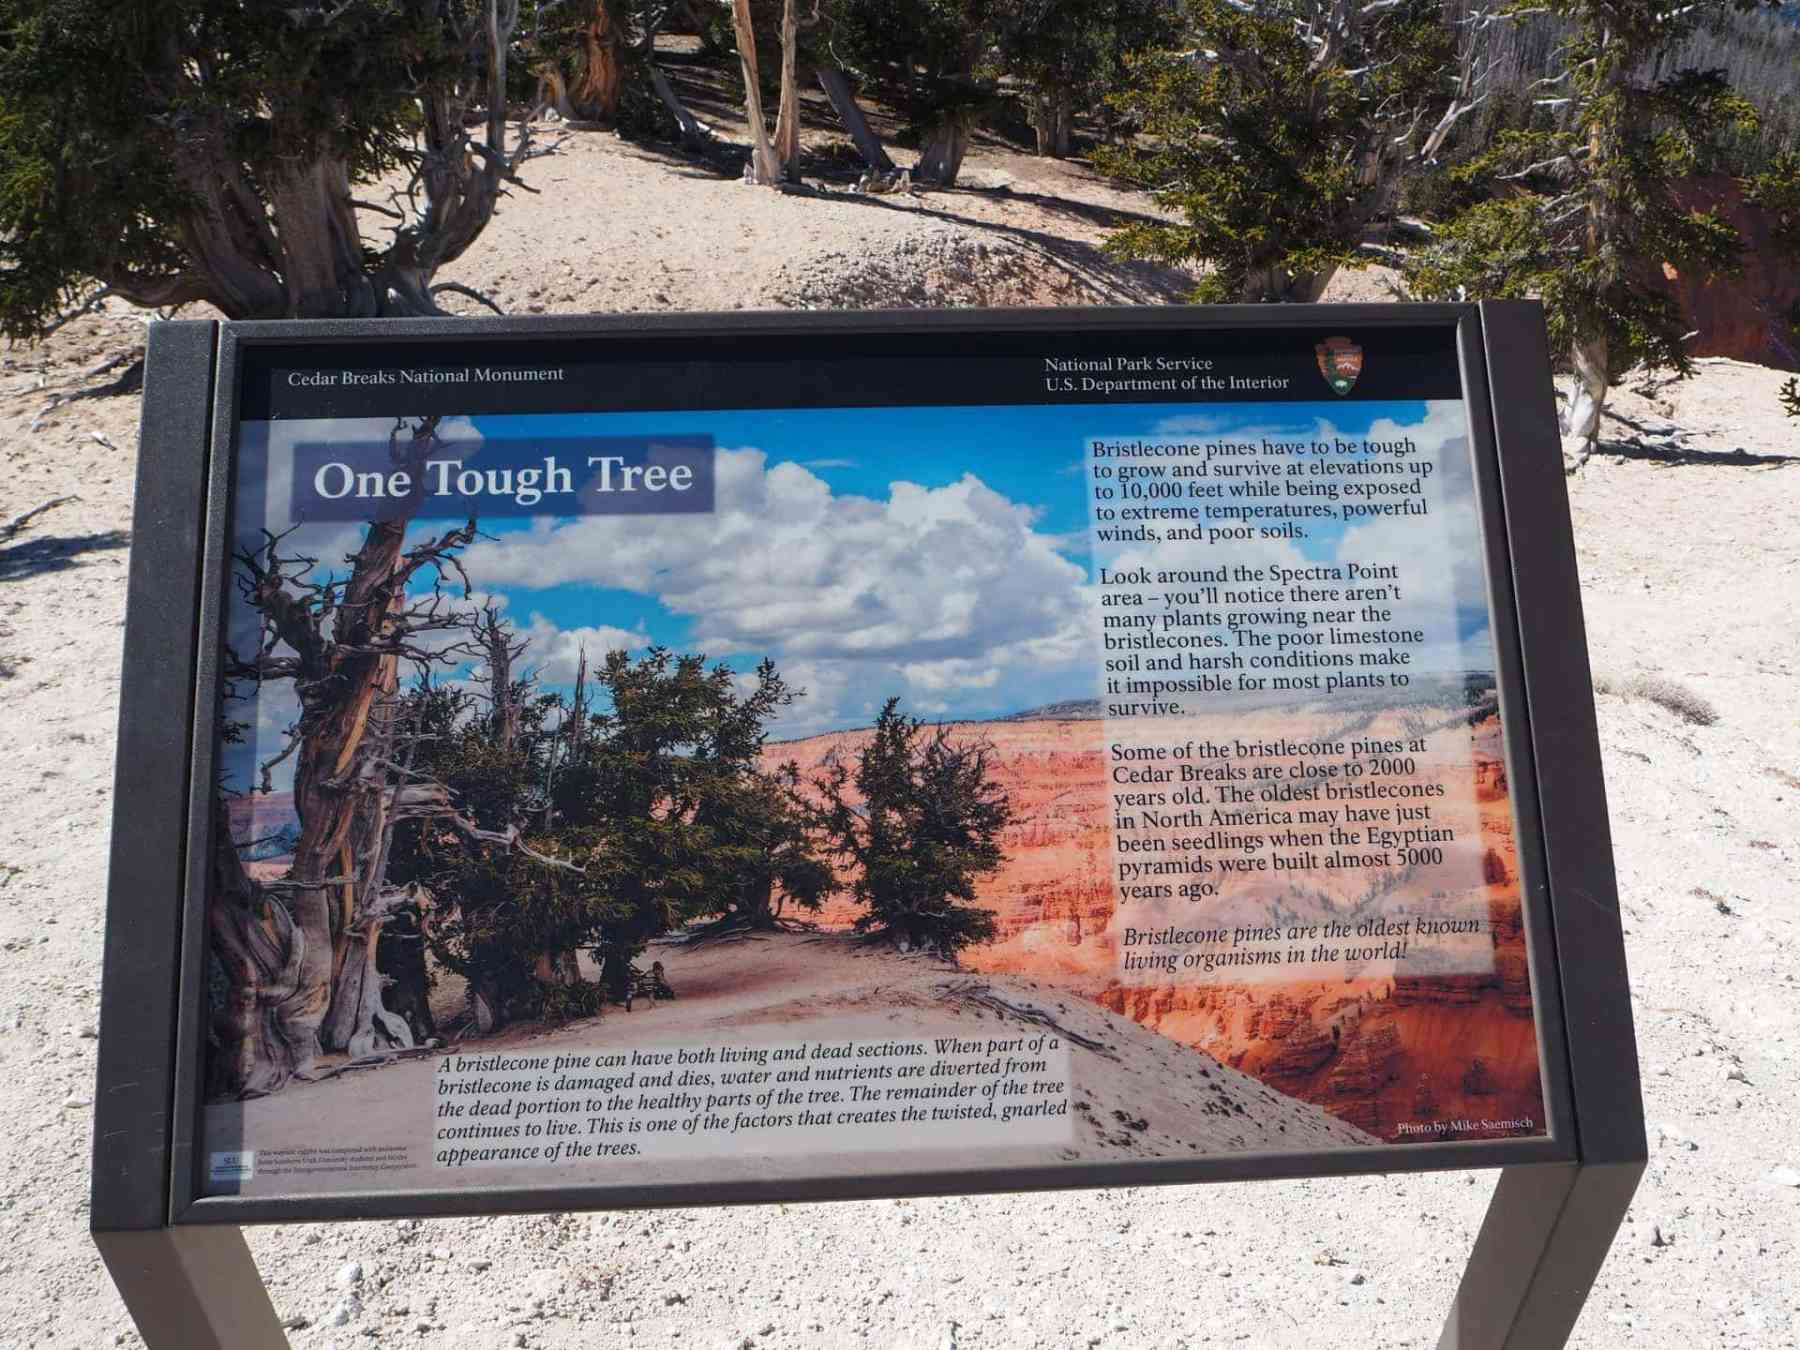 Info on Bristlecone pines